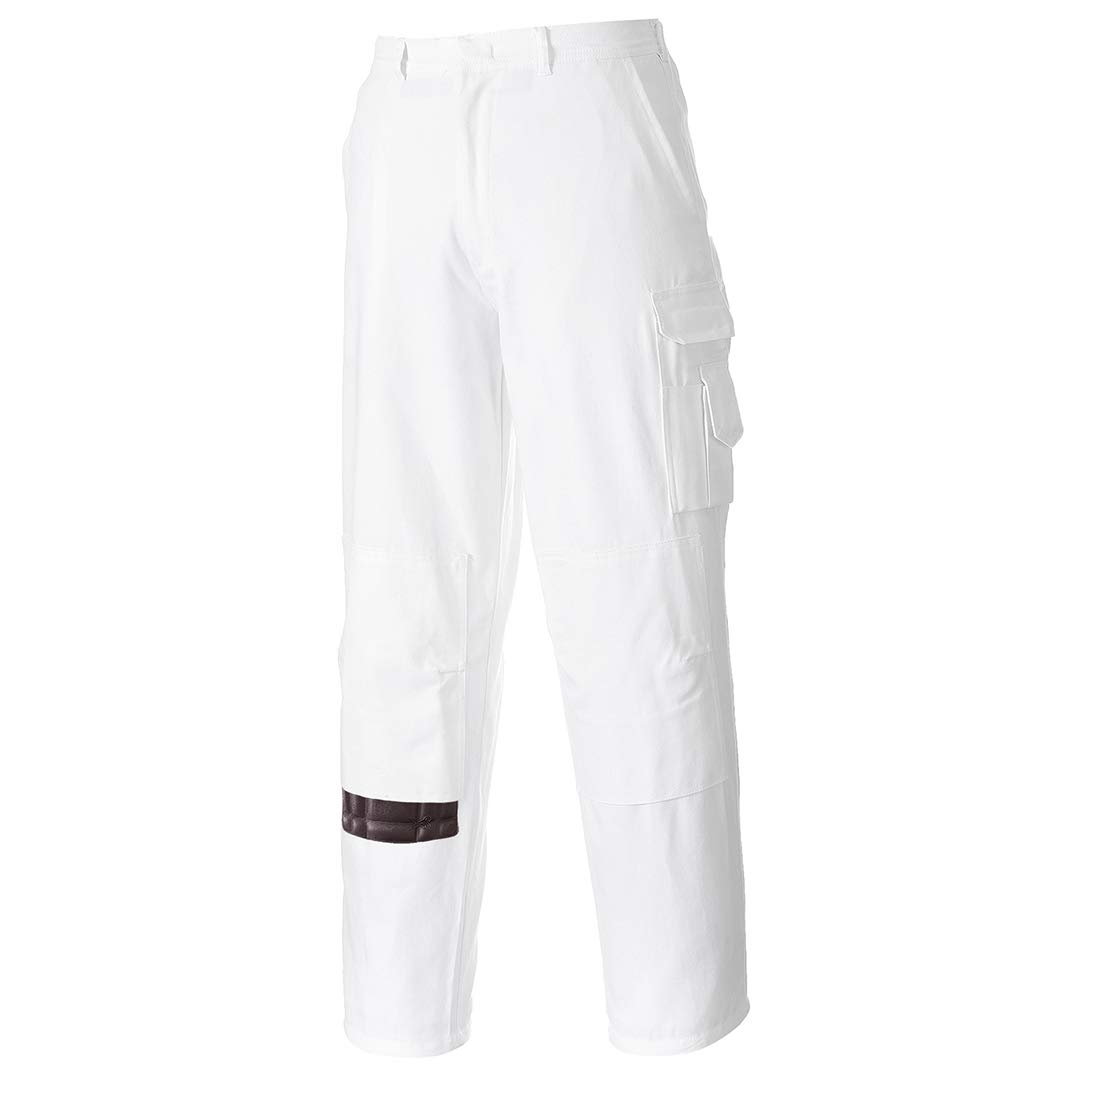 Portwest Painters Trousers Work Pants Protection Protect Overall Decorator Paint, 3 XL White